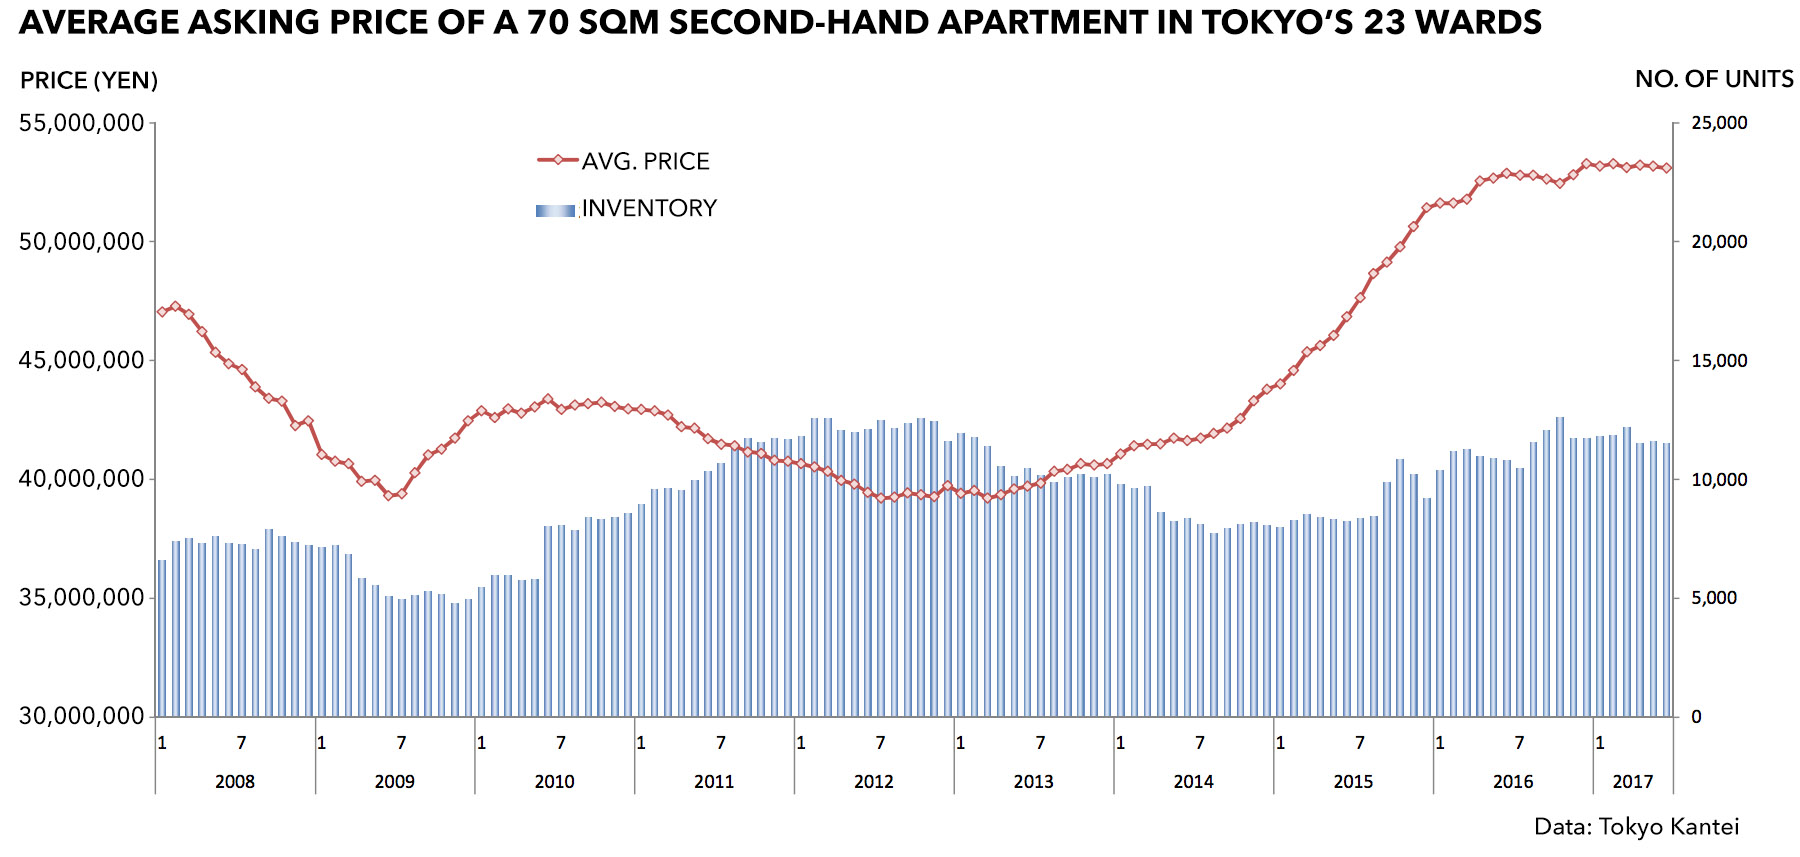 Tokyo apartment asking prices in June 2017